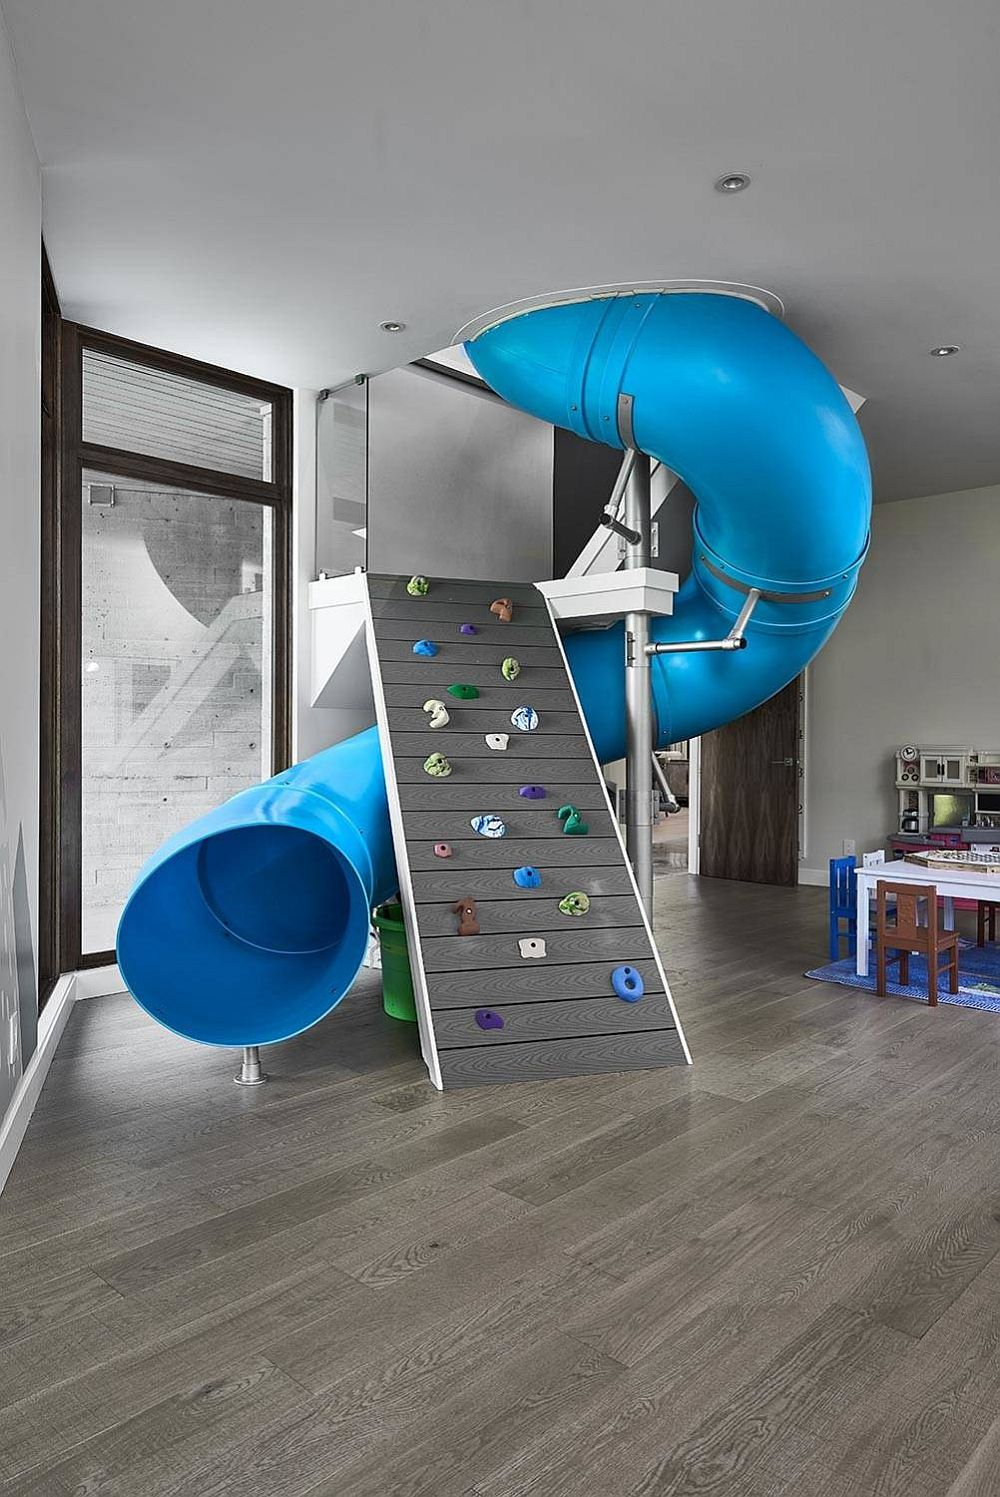 Tube slide and climbing wall rolled into one in the kids' room